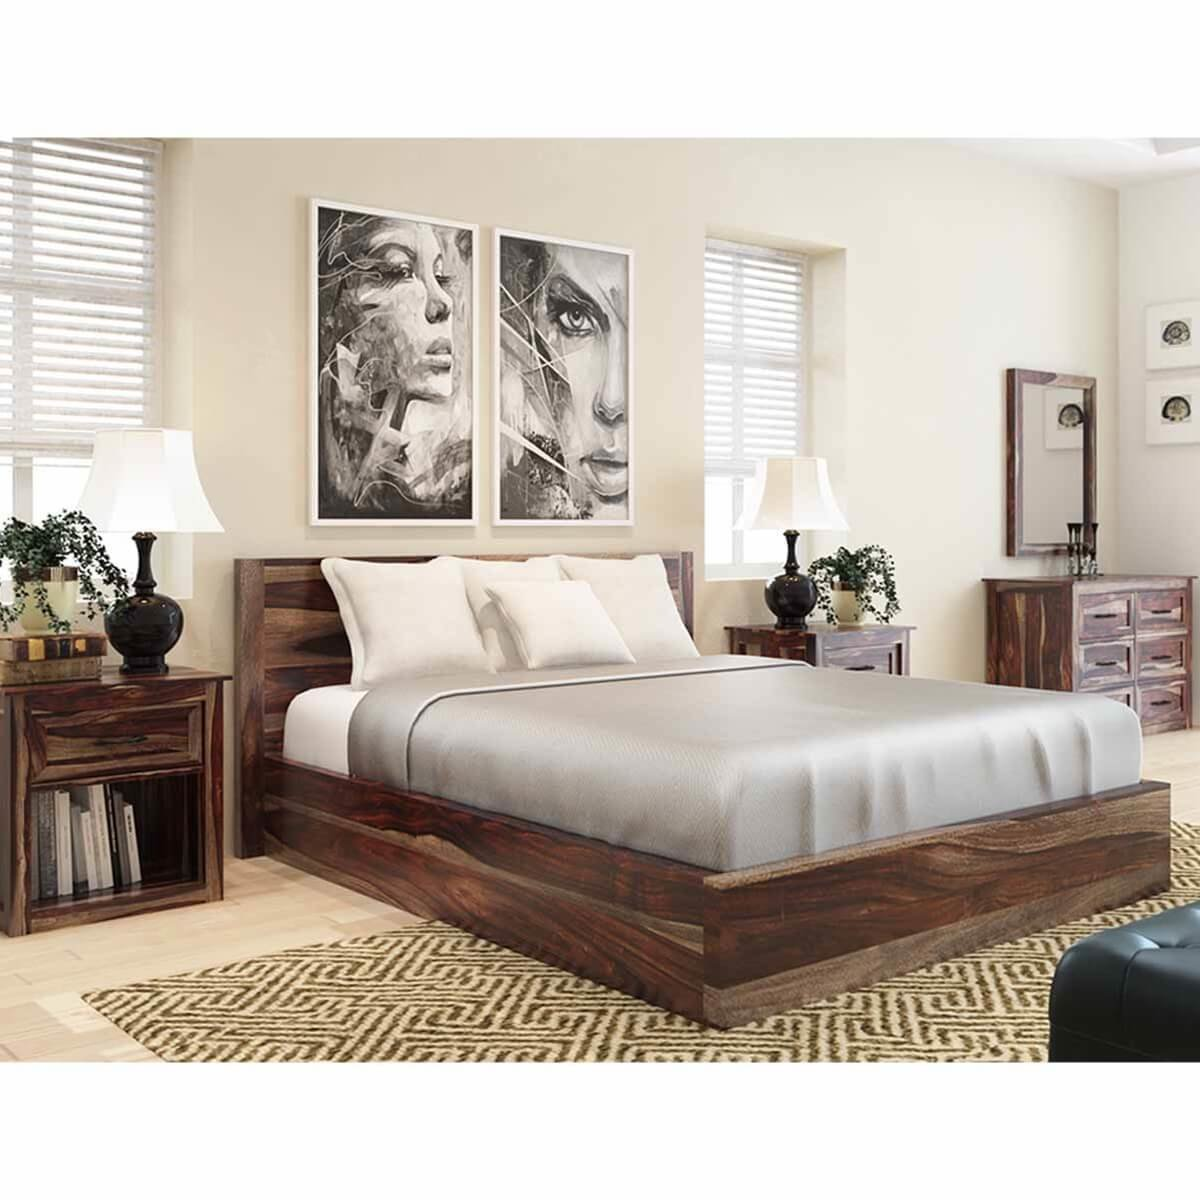 Best Jamaica Rustic Solid Wood 5 Piece King Size Bedroom Rtp With Pictures